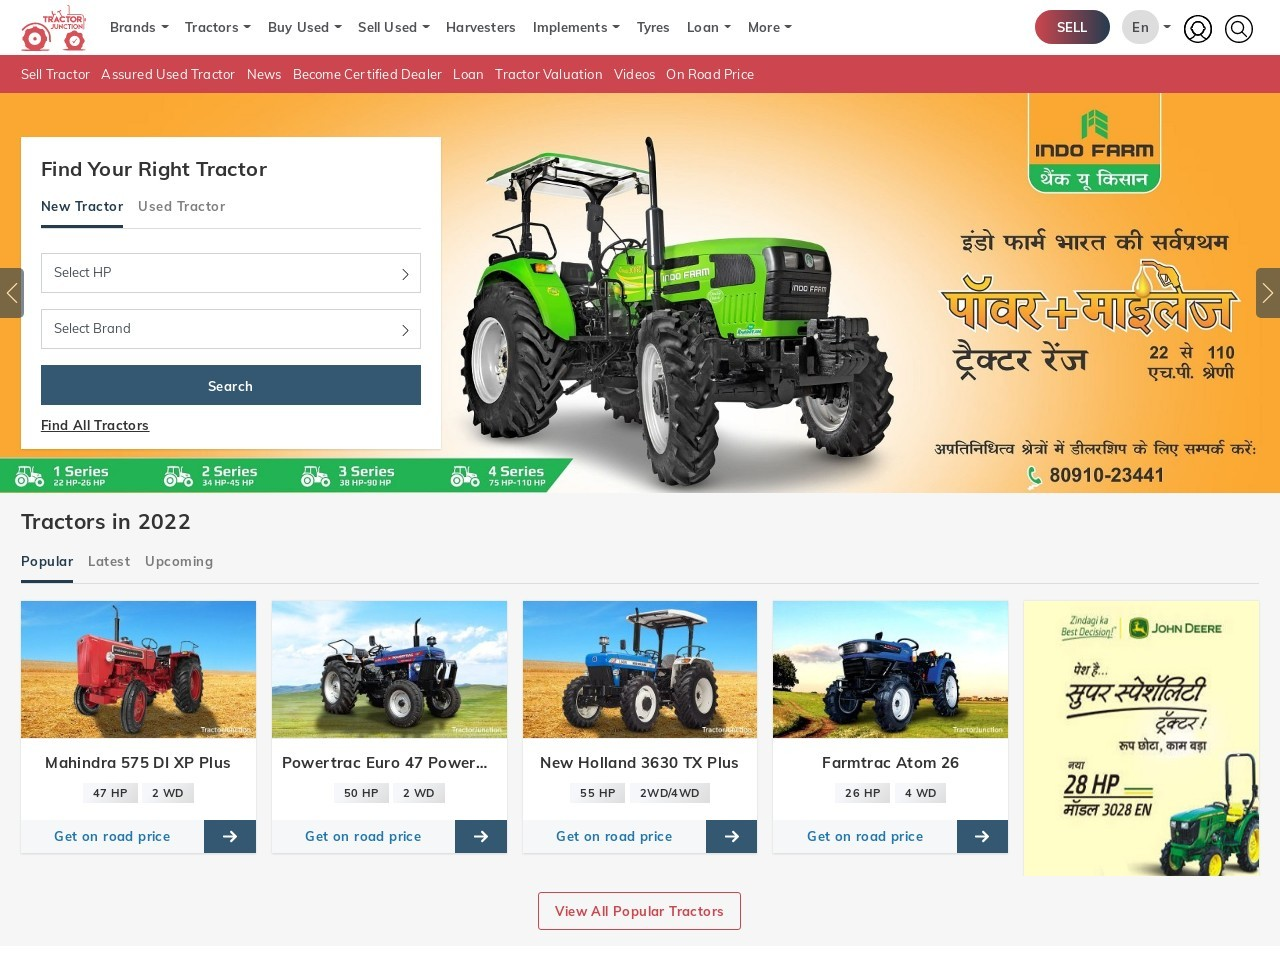 Mahindra Arjun Novo 605 Di-ps Tractor Price in India